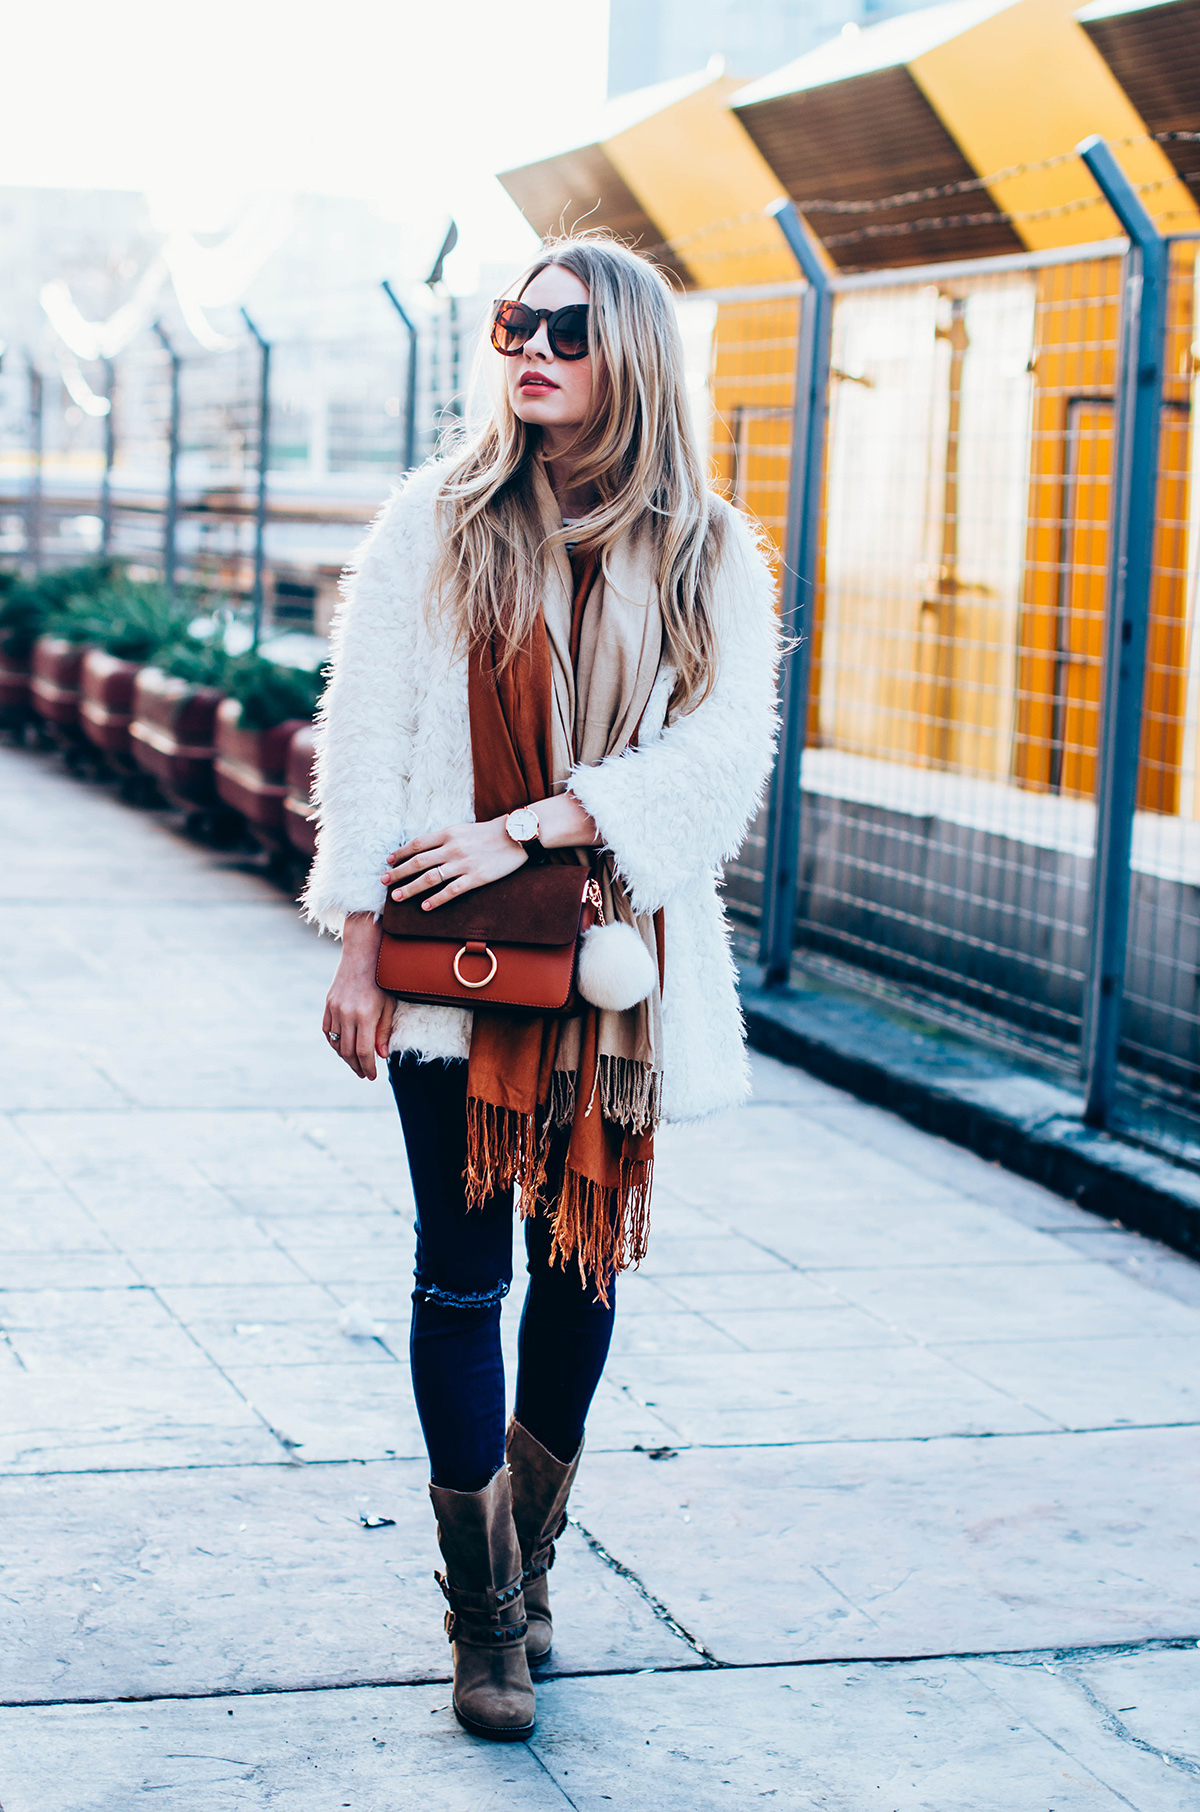 white-fluffy-cardgan-ripped-skinny-jeans-suede-boots-camel-scarf-fluffy-keyrng-cat-eye-sunglasses (6)